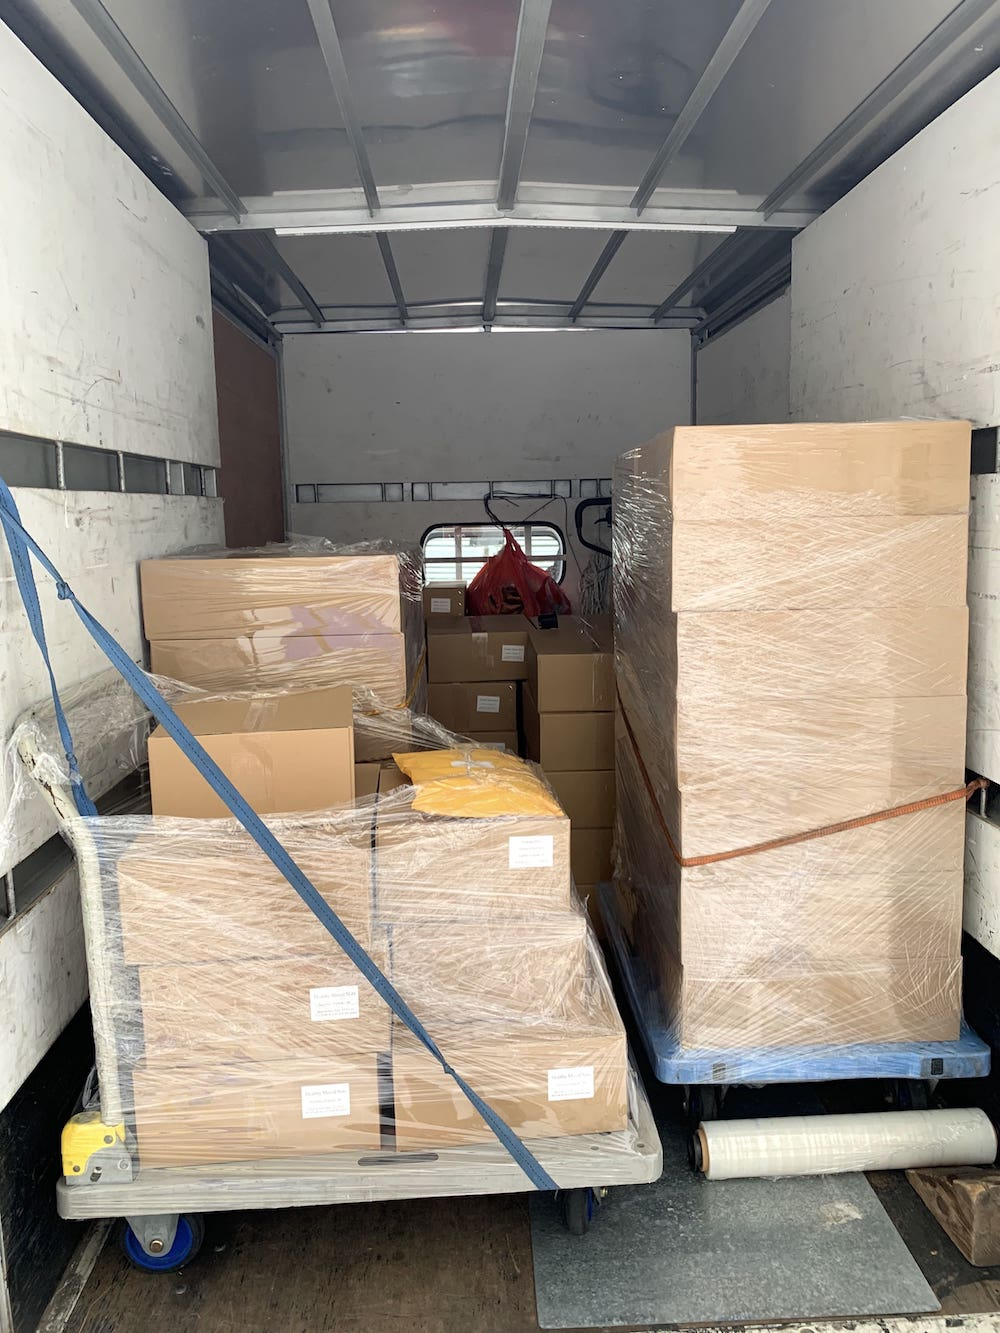 Truck Delivery for Large Orders